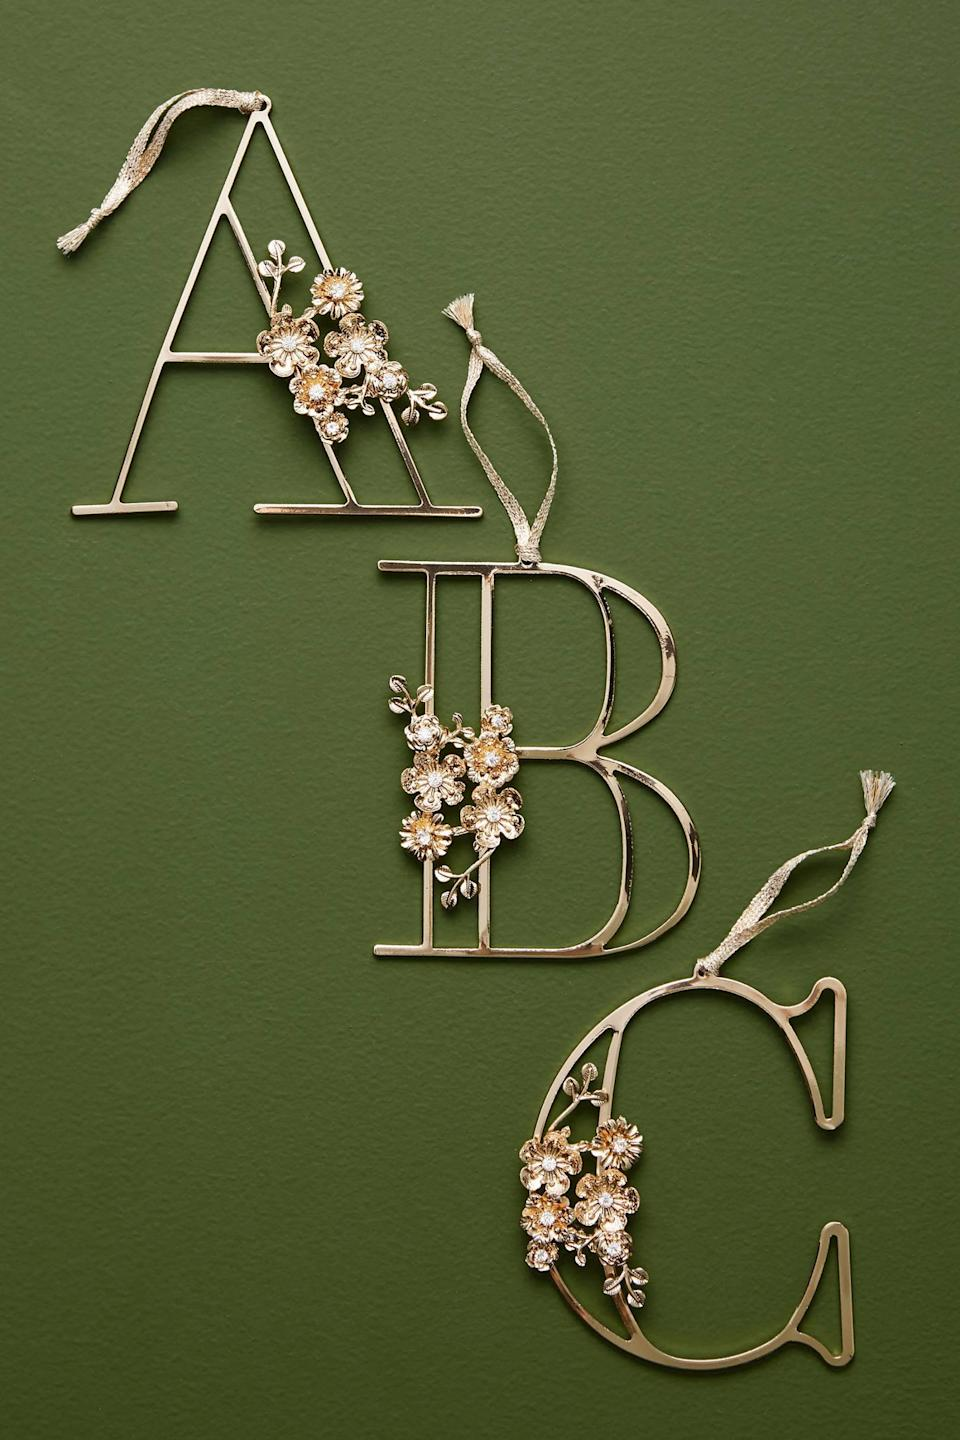 """<p>Add a sophisticated touch to your family tree with the <a href=""""https://www.popsugar.com/buy/Floral-Monogram-Ornament-490441?p_name=Floral%20Monogram%20Ornament&retailer=anthropologie.com&pid=490441&price=12&evar1=casa%3Aus&evar9=46615300&evar98=https%3A%2F%2Fwww.popsugar.com%2Fhome%2Fphoto-gallery%2F46615300%2Fimage%2F46615311%2FFloral-Monogram-Ornament&list1=shopping%2Canthropologie%2Choliday%2Cchristmas%2Cchristmas%20decorations%2Choliday%20decor%2Chome%20shopping&prop13=mobile&pdata=1"""" rel=""""nofollow noopener"""" class=""""link rapid-noclick-resp"""" target=""""_blank"""" data-ylk=""""slk:Floral Monogram Ornament"""">Floral Monogram Ornament</a> ($12).</p>"""